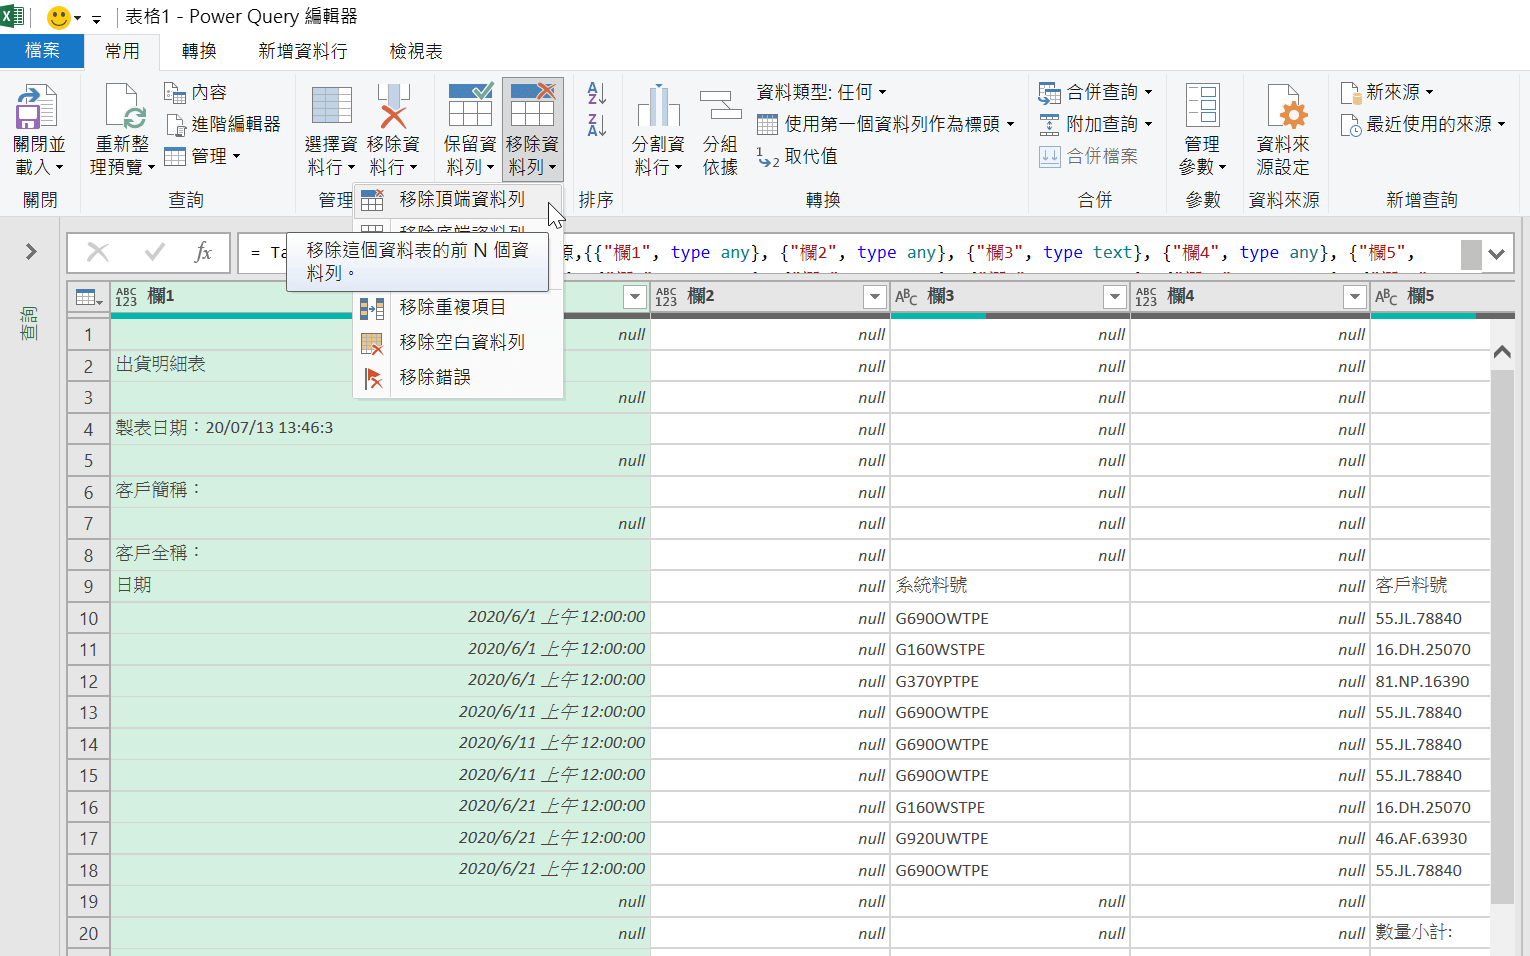 【Excel Power BI】ERP出貨明細表有空白欄?交給Power Query處理,轉置篩選再轉置 Power BI 第2張